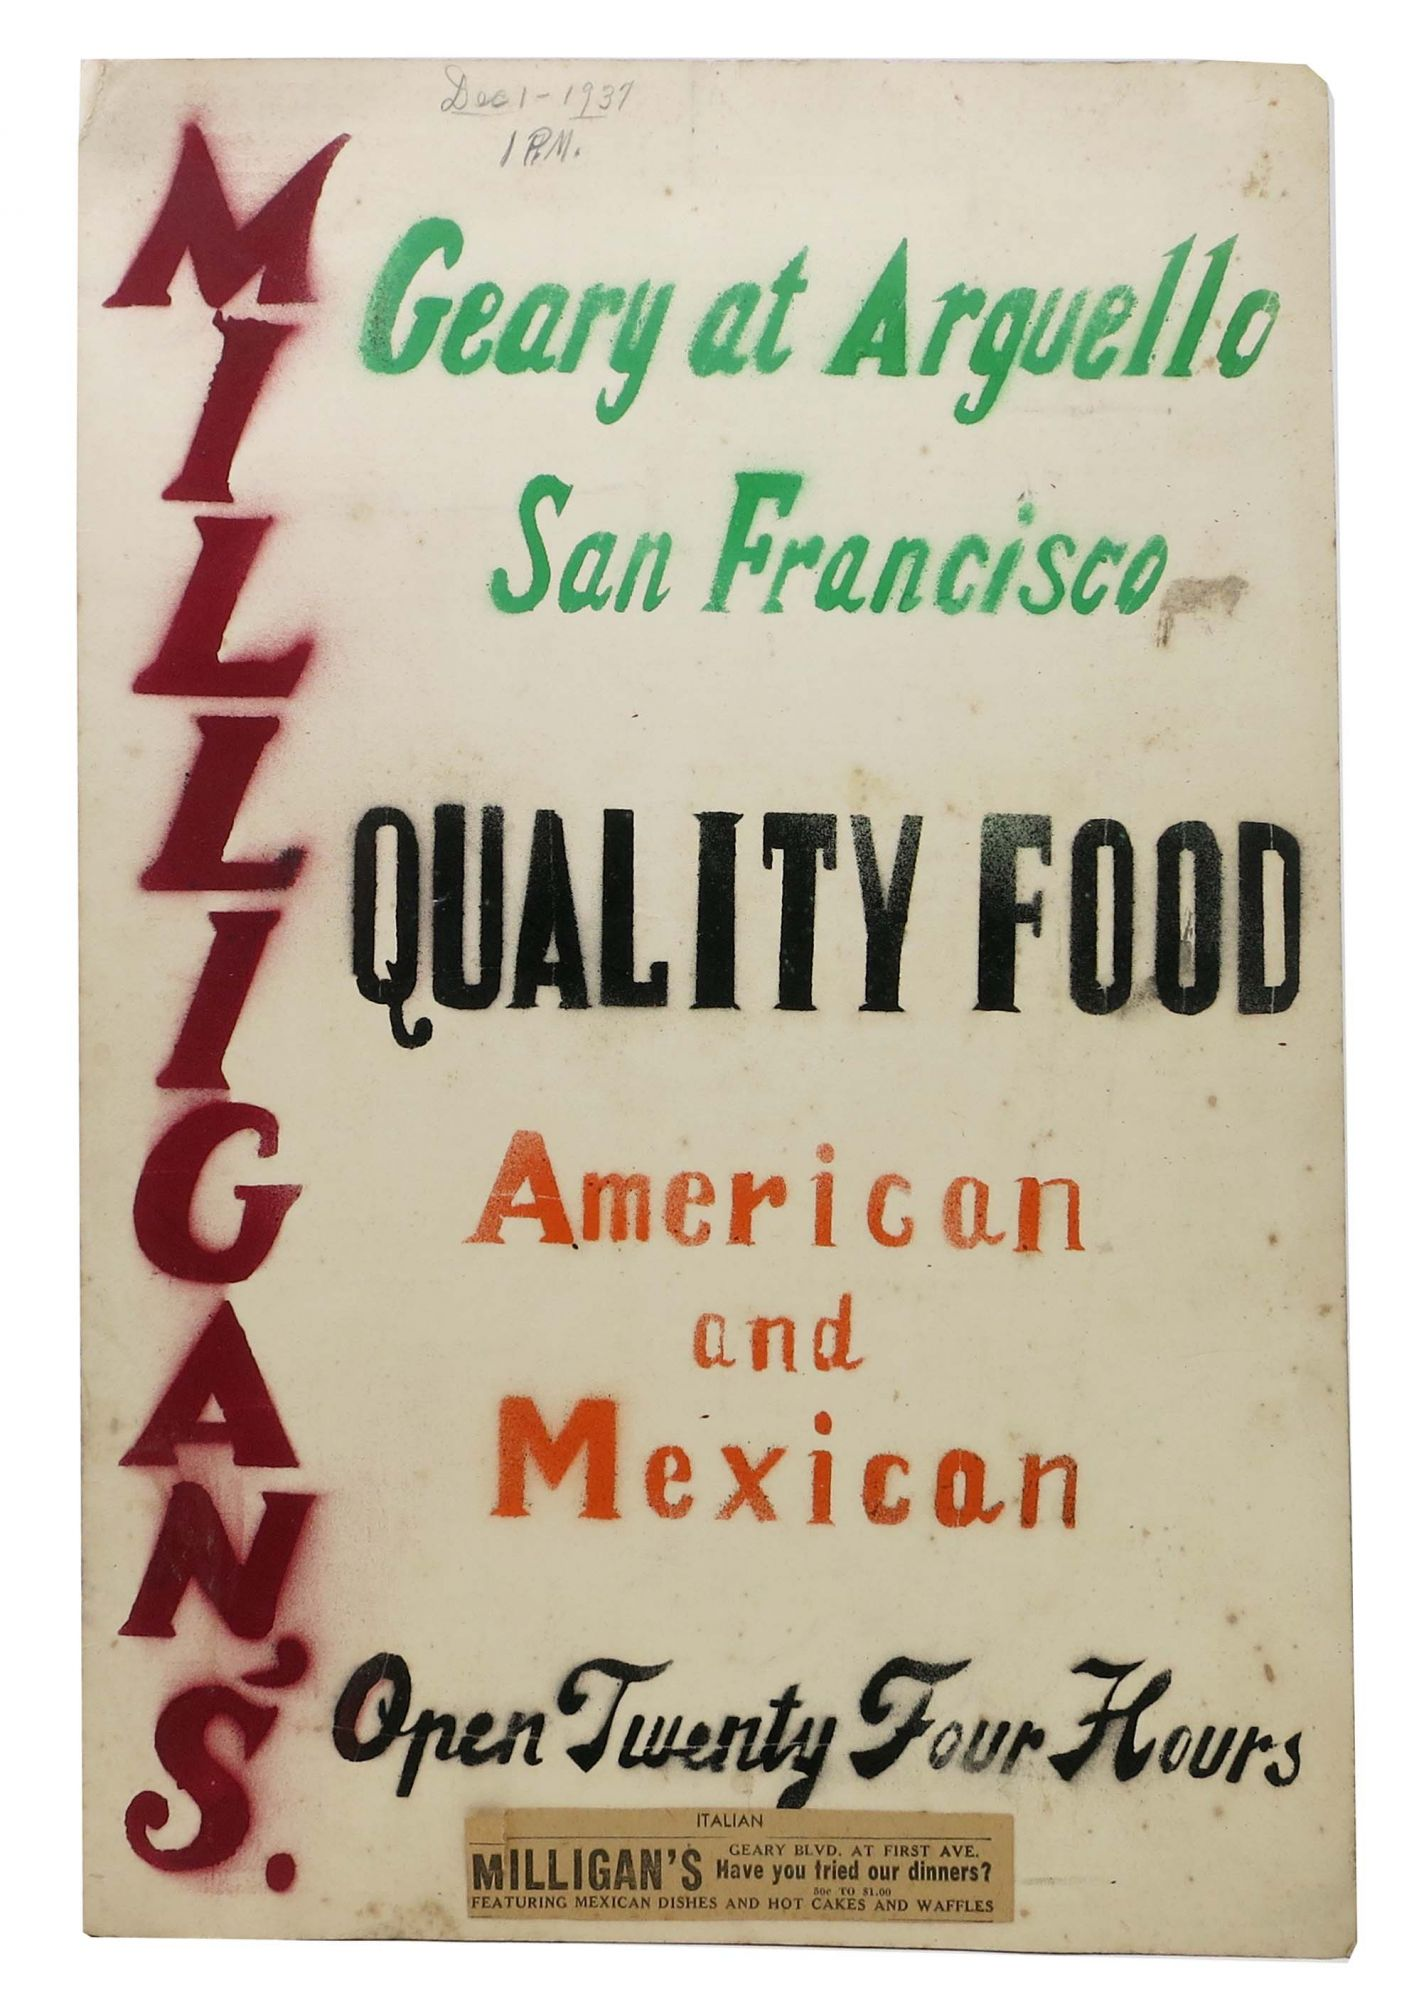 486fd5d546ca MILLIGAN'S QUALITY FOOD.; Geary at Arguello San Francisco, American ...